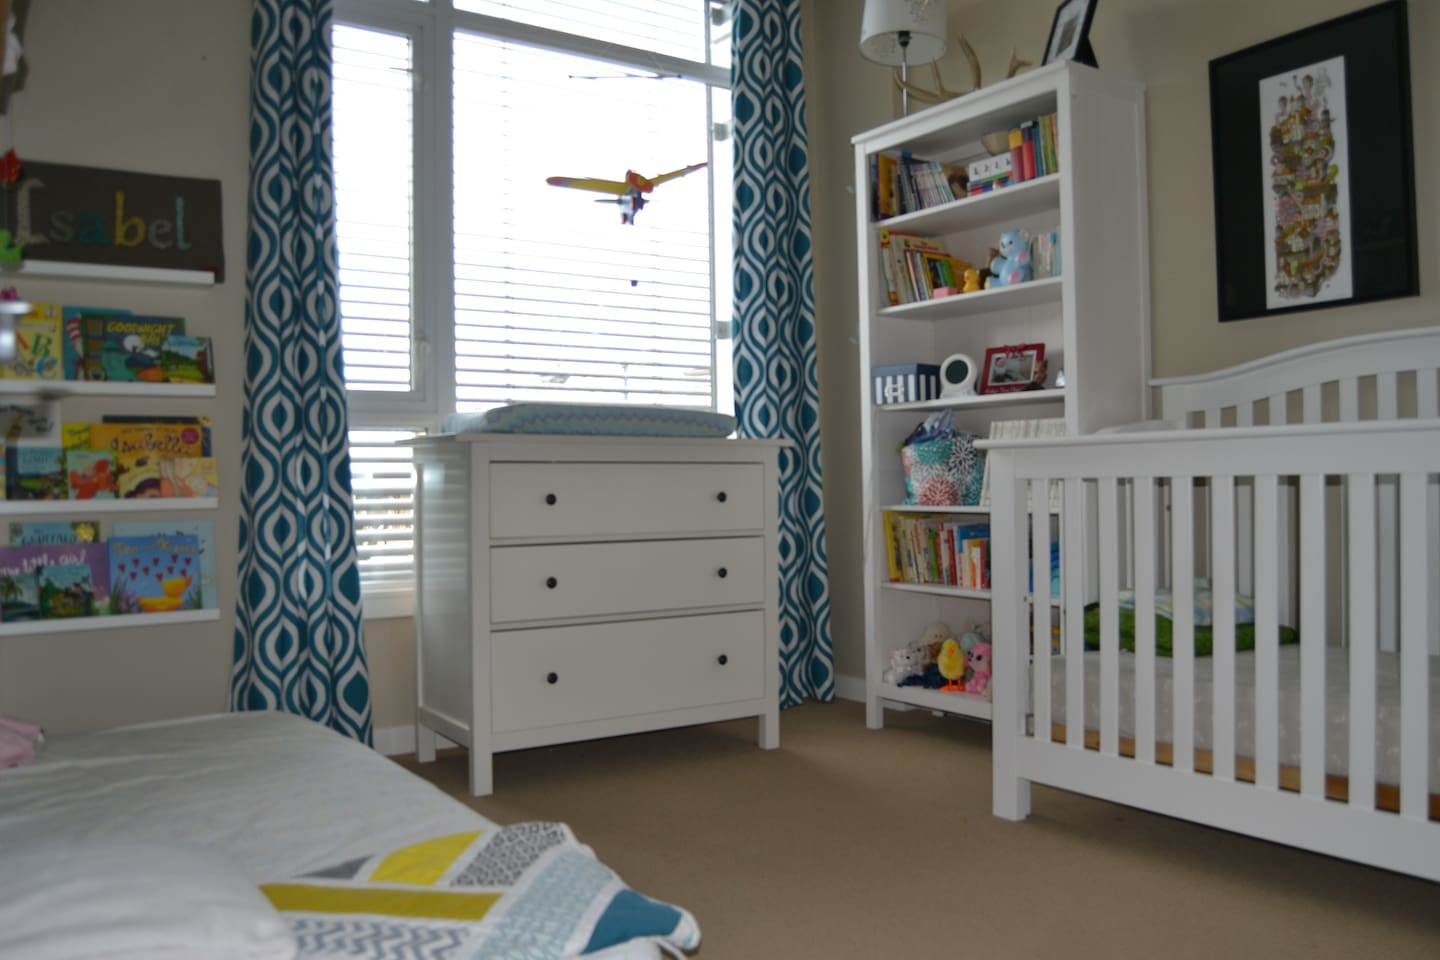 Kids room with single mattress and a crib.